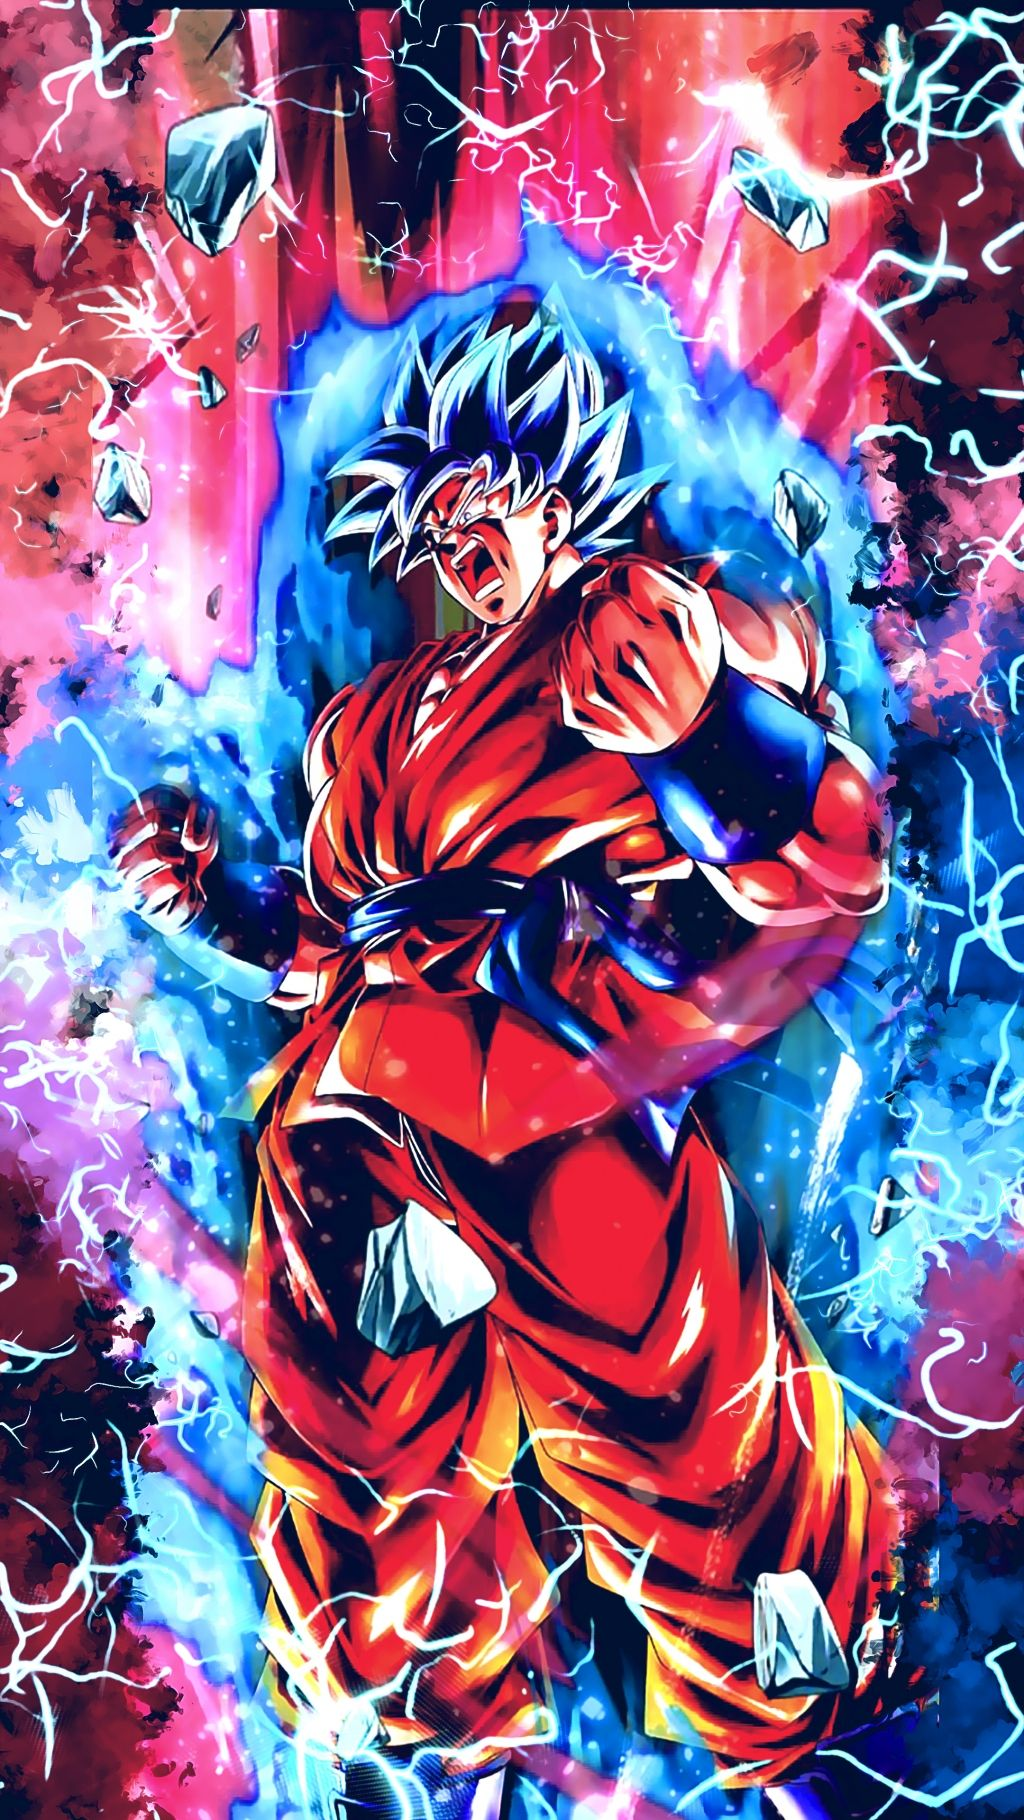 20 4k Wallpapers Of Dbz And Super For Phones In 2020 Dragon Ball Super Artwork Anime Dragon Ball Super Dragon Ball Super Wallpapers